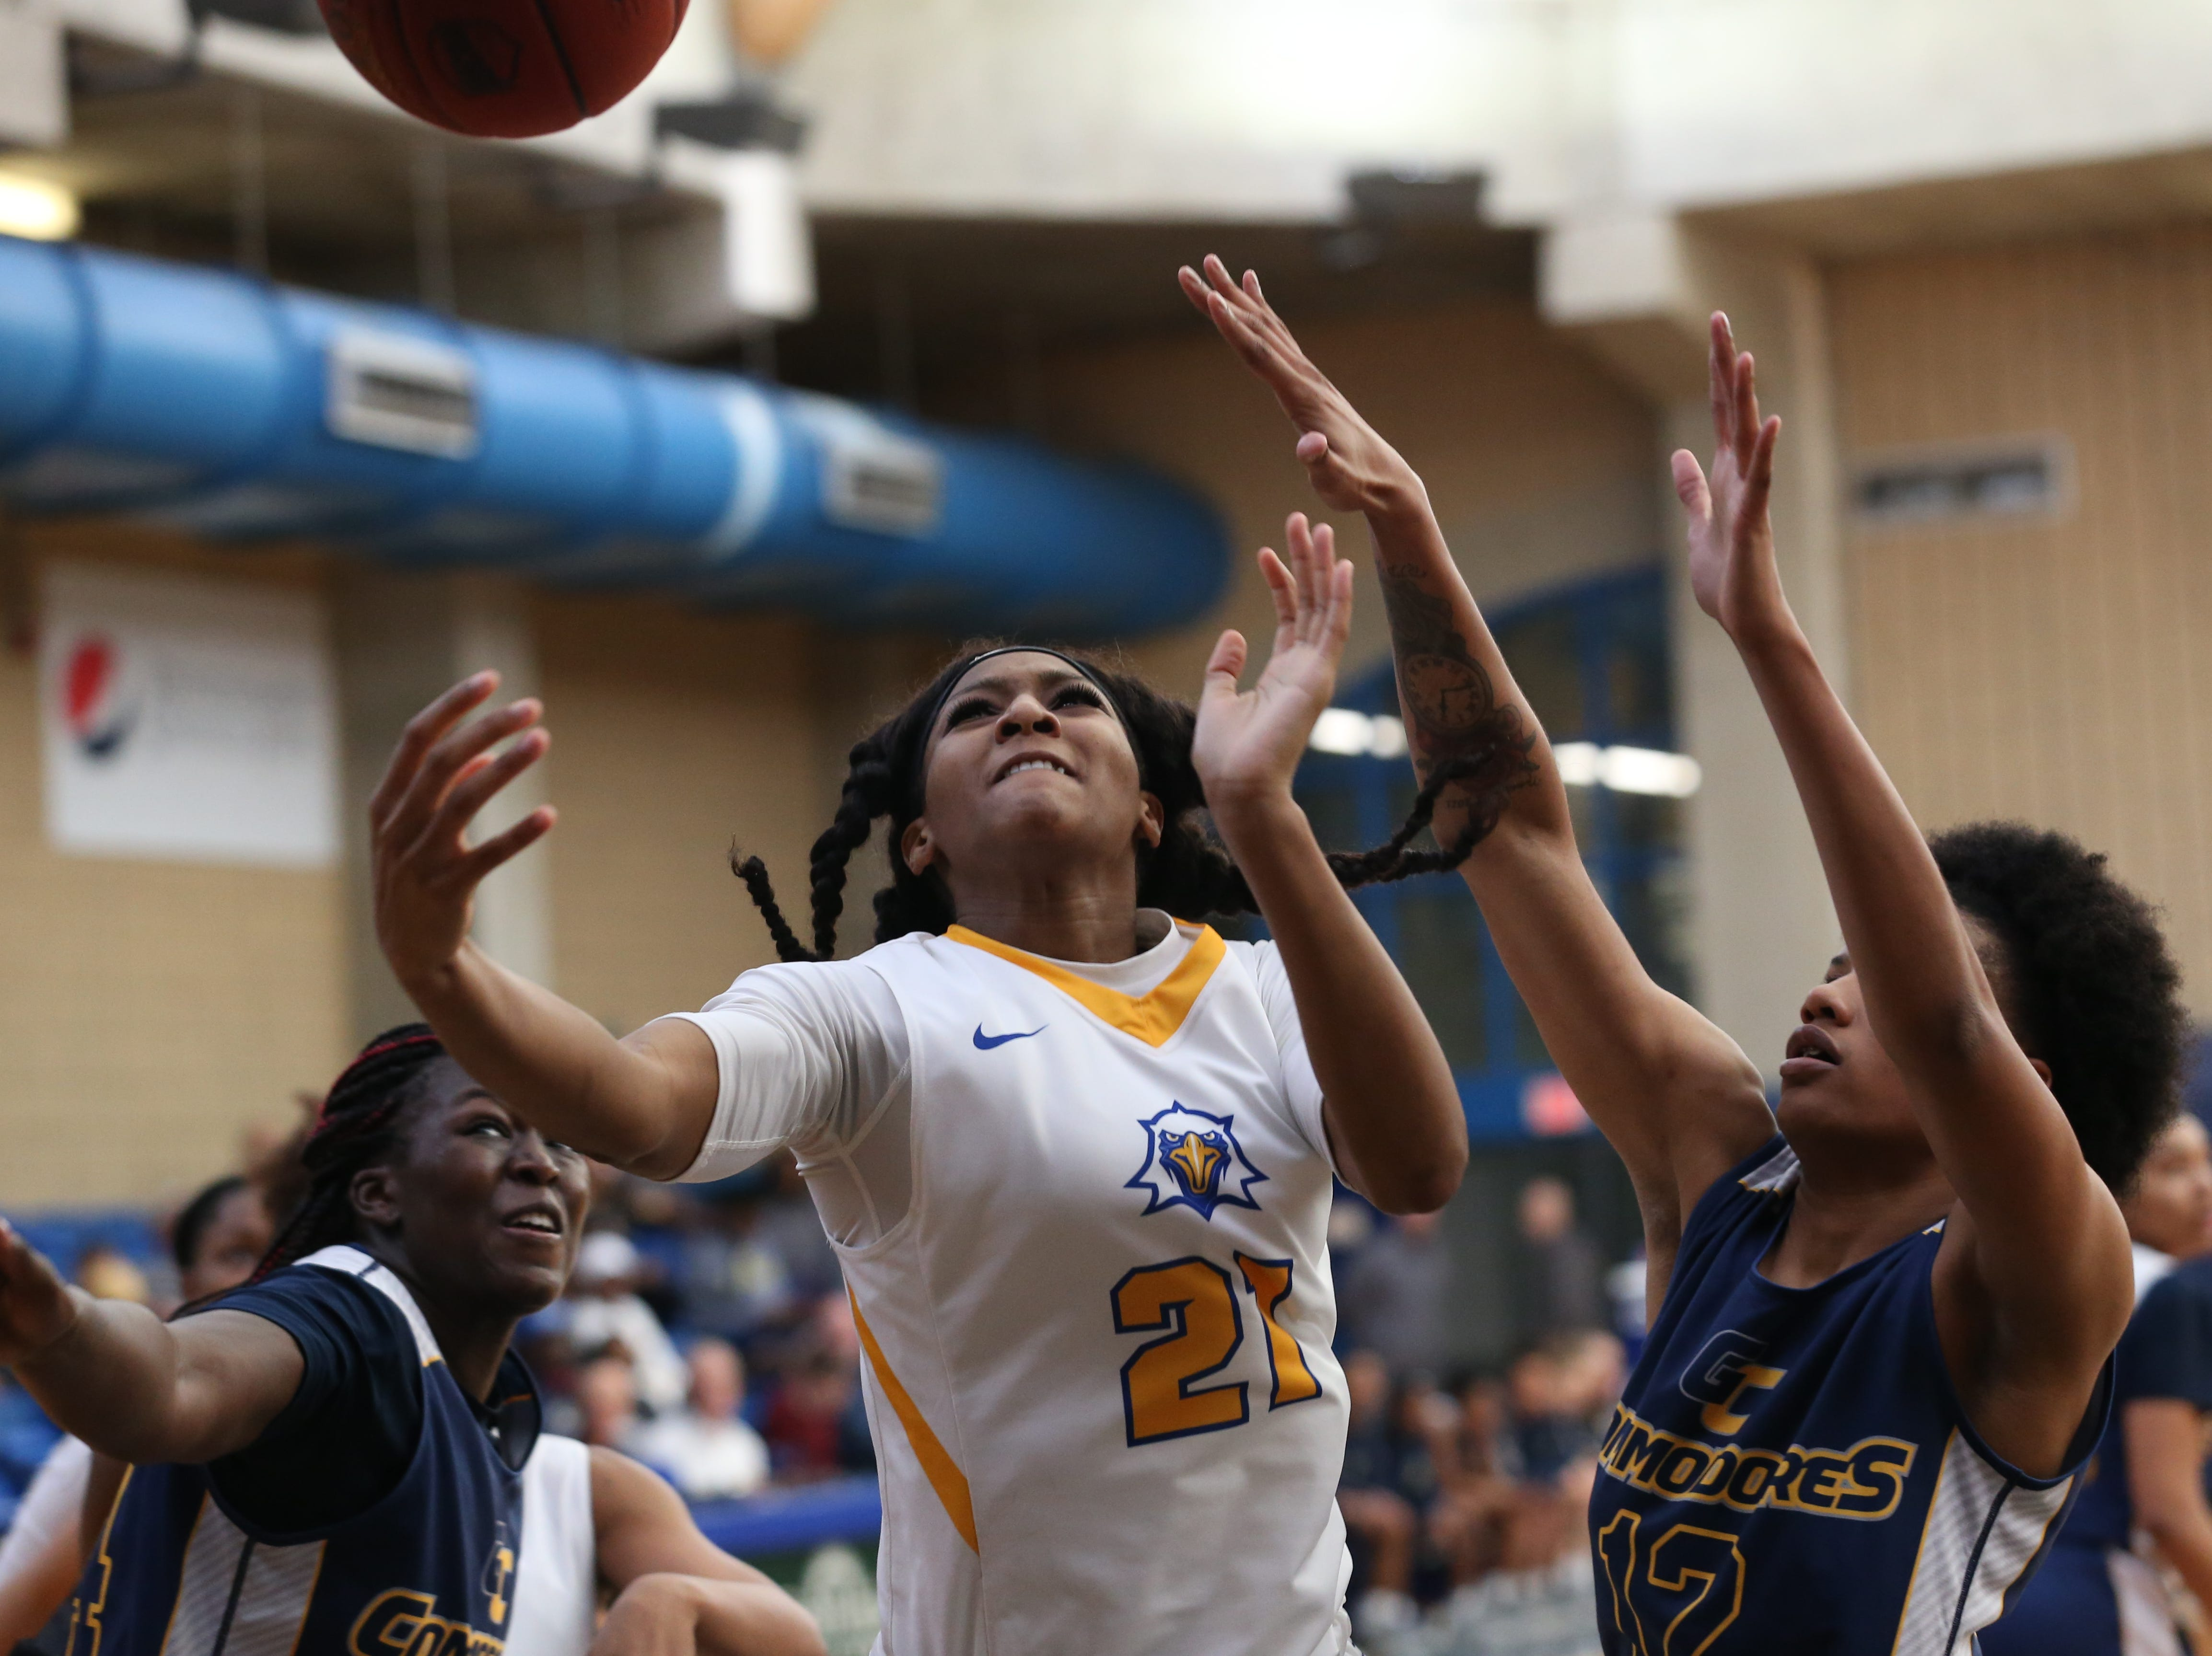 Tallahassee Community College Eagles forward Jada Perry (21) goes to the hoop for a layup. The Tallahassee Community College Eagles host the Gulf Coast State College Commodores in a conference match-up in the Eagledome, Saturday, Jan. 5, 2019.